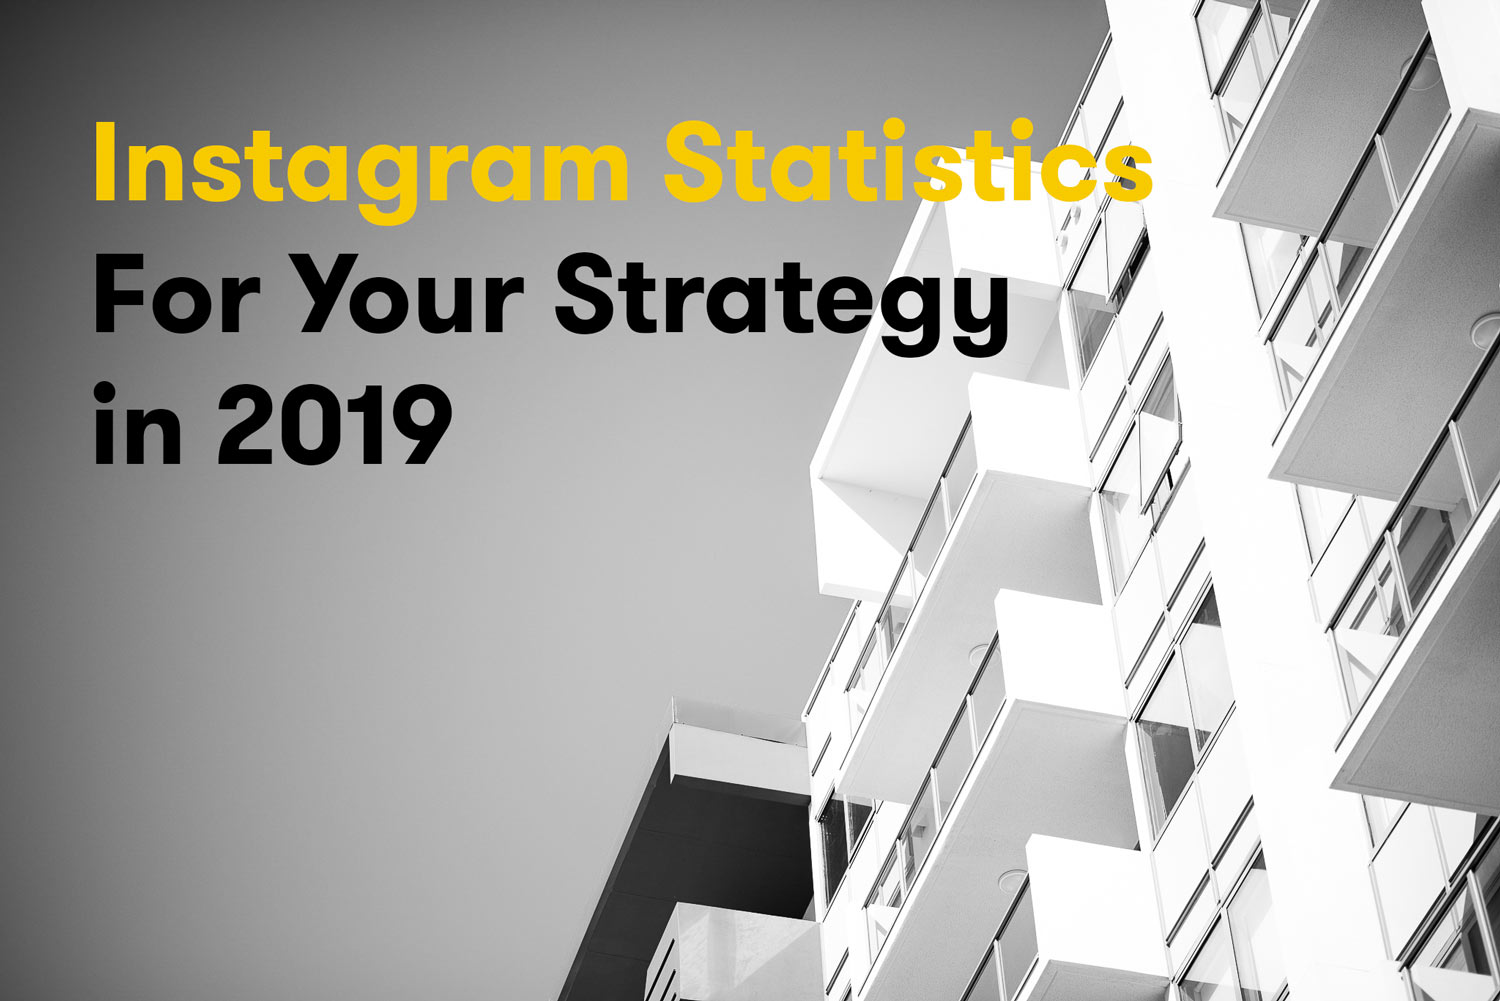 Instagram Statistics For Your Social Strategy in 2019 [Infographic]